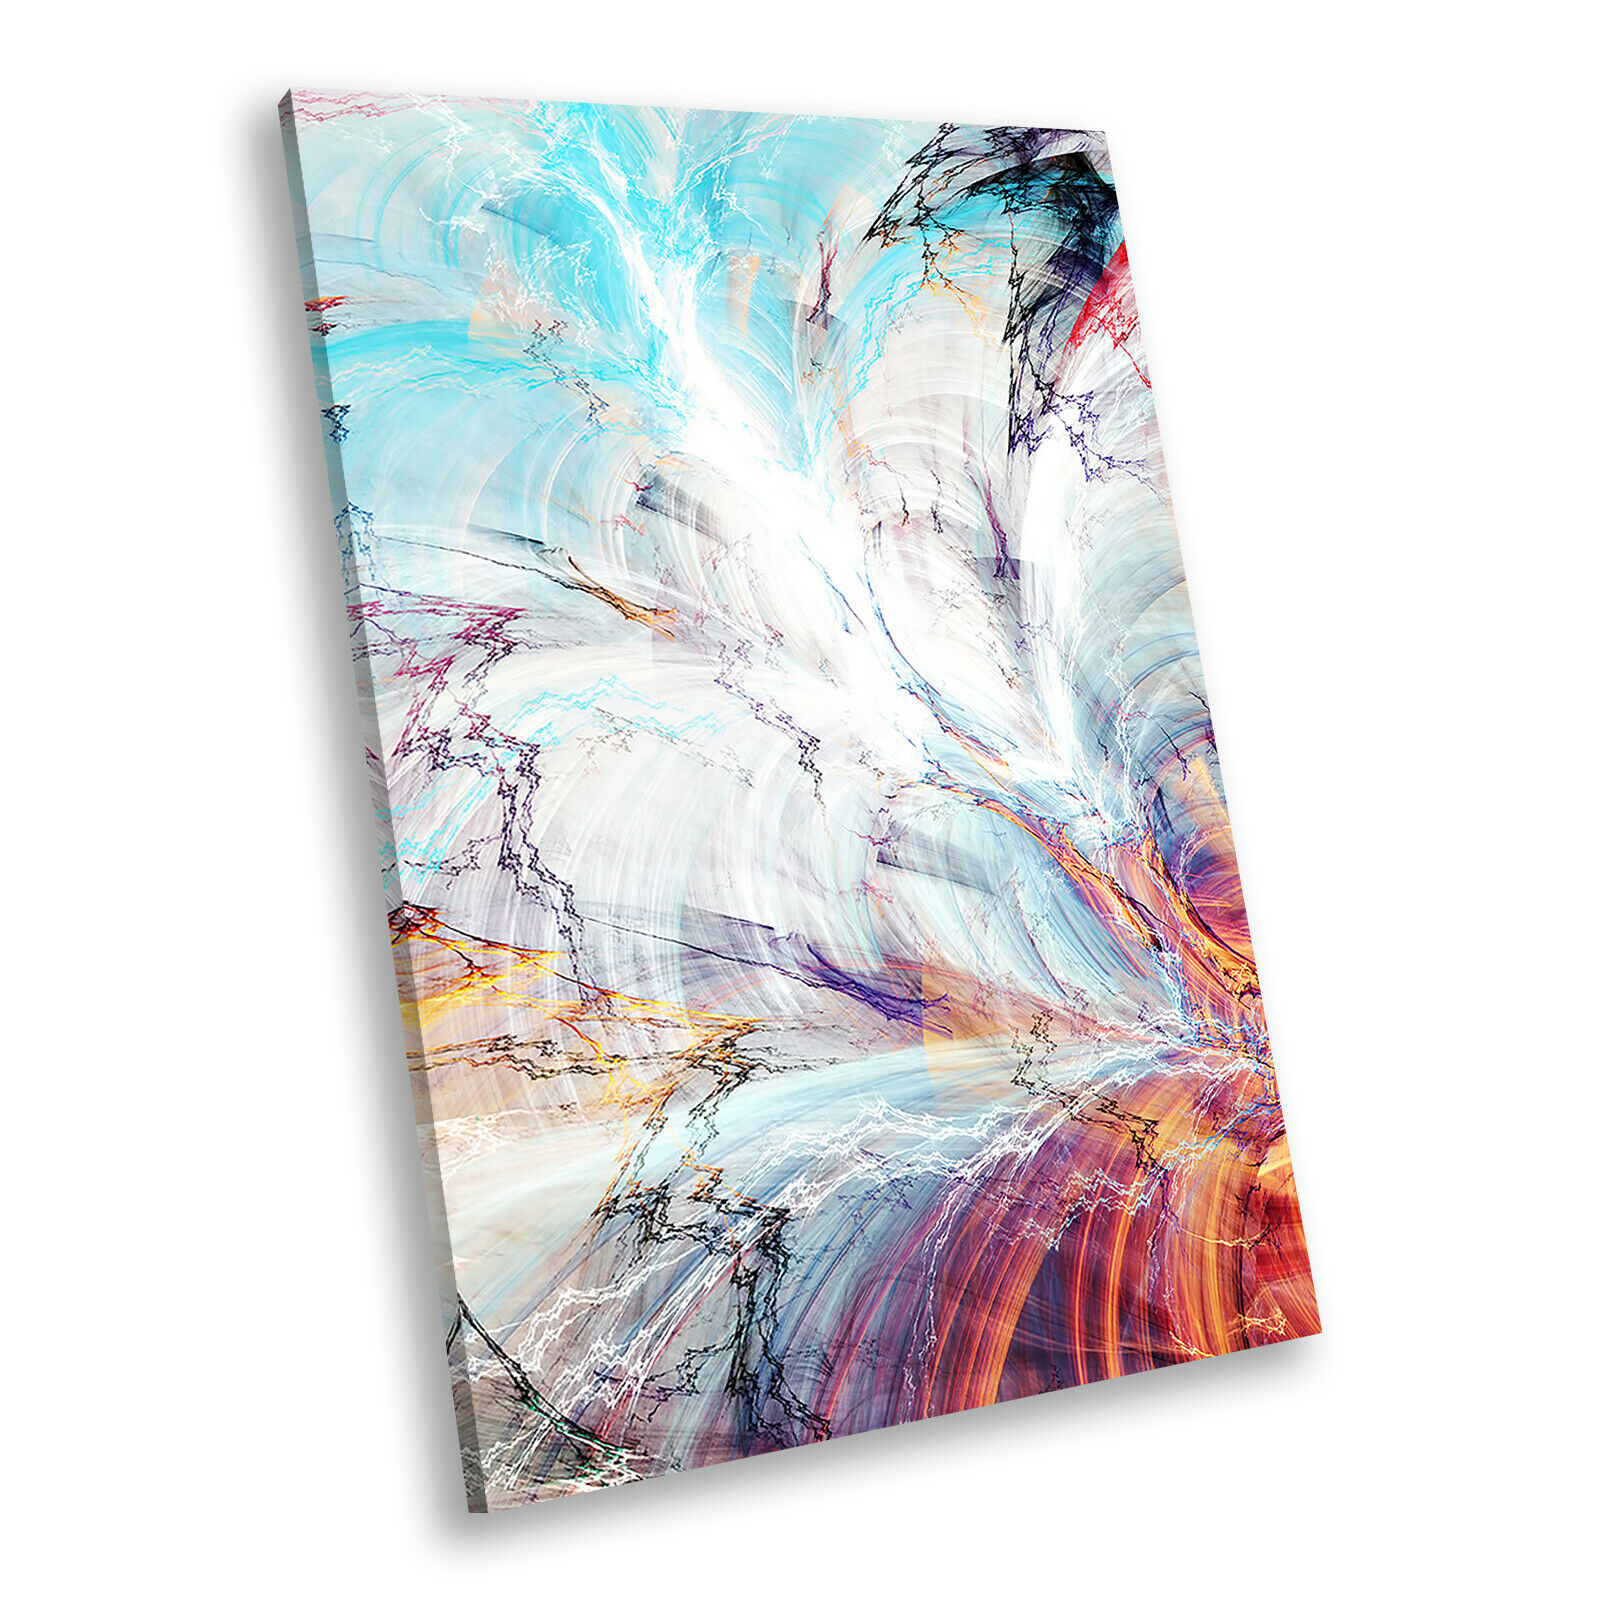 Blau Orange lila Portrait Abstract Canvas Framed Art Large Picture